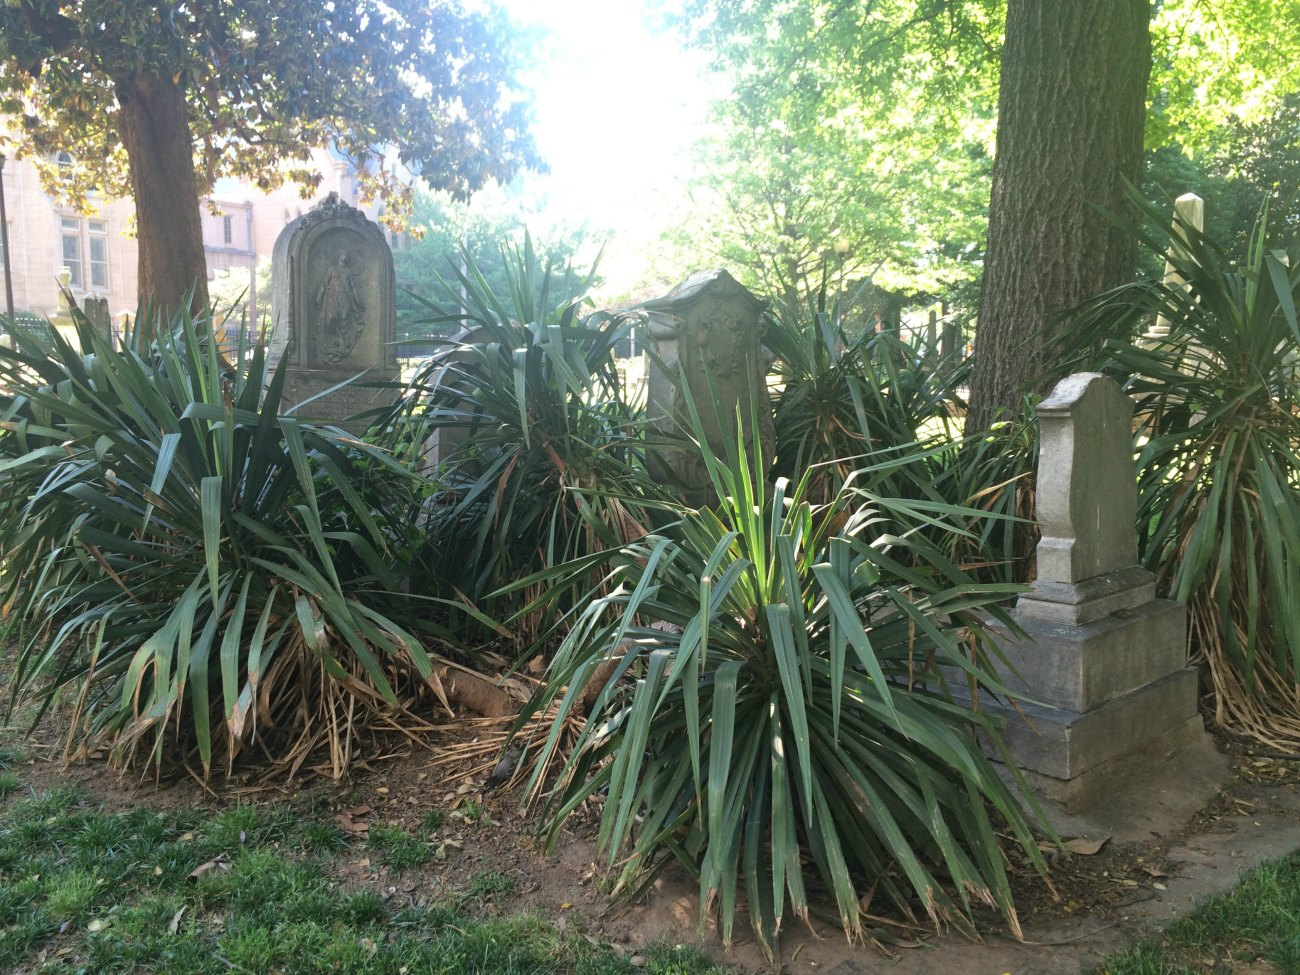 Charlotte's oldest cemetery is almost as old as the city itself